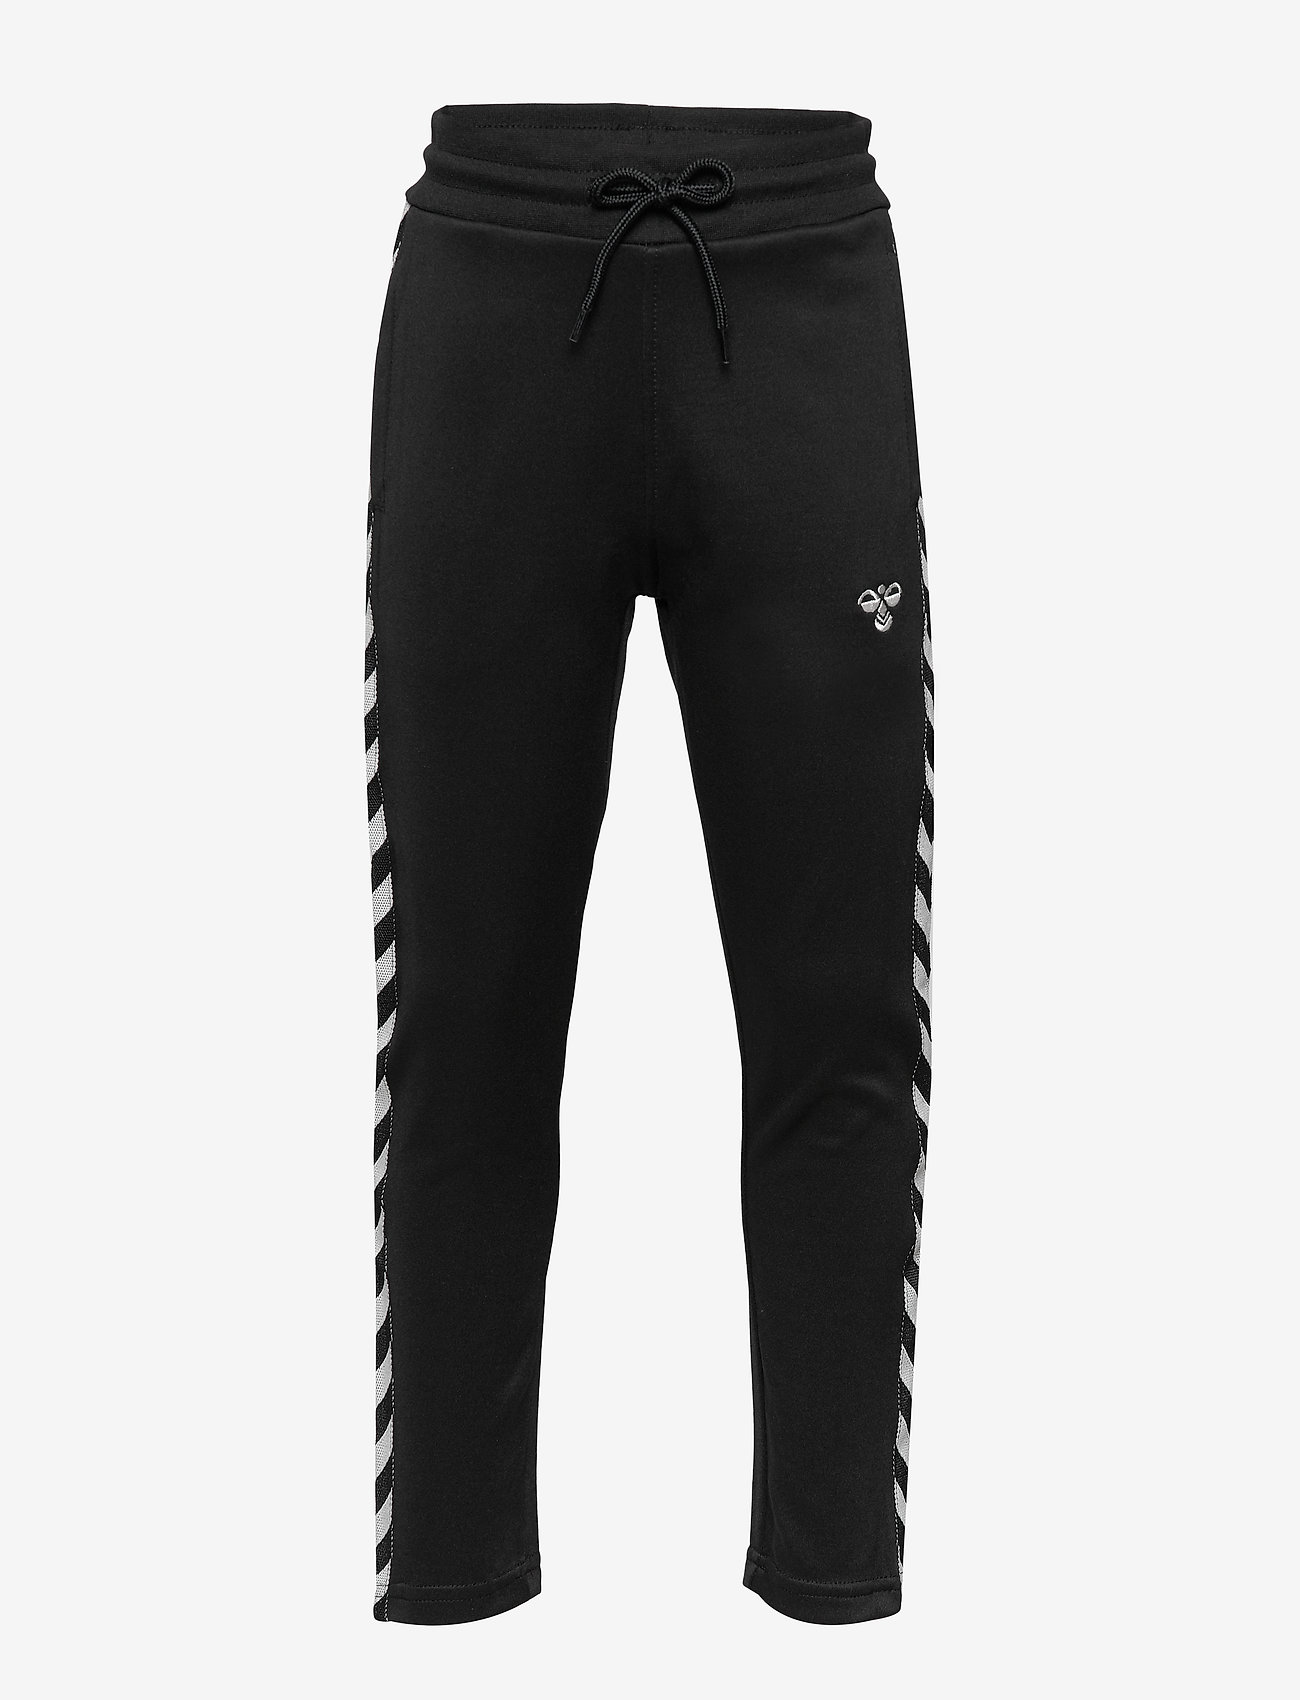 Hummel - HMLKICK PANTS - sweatpants - black - 0